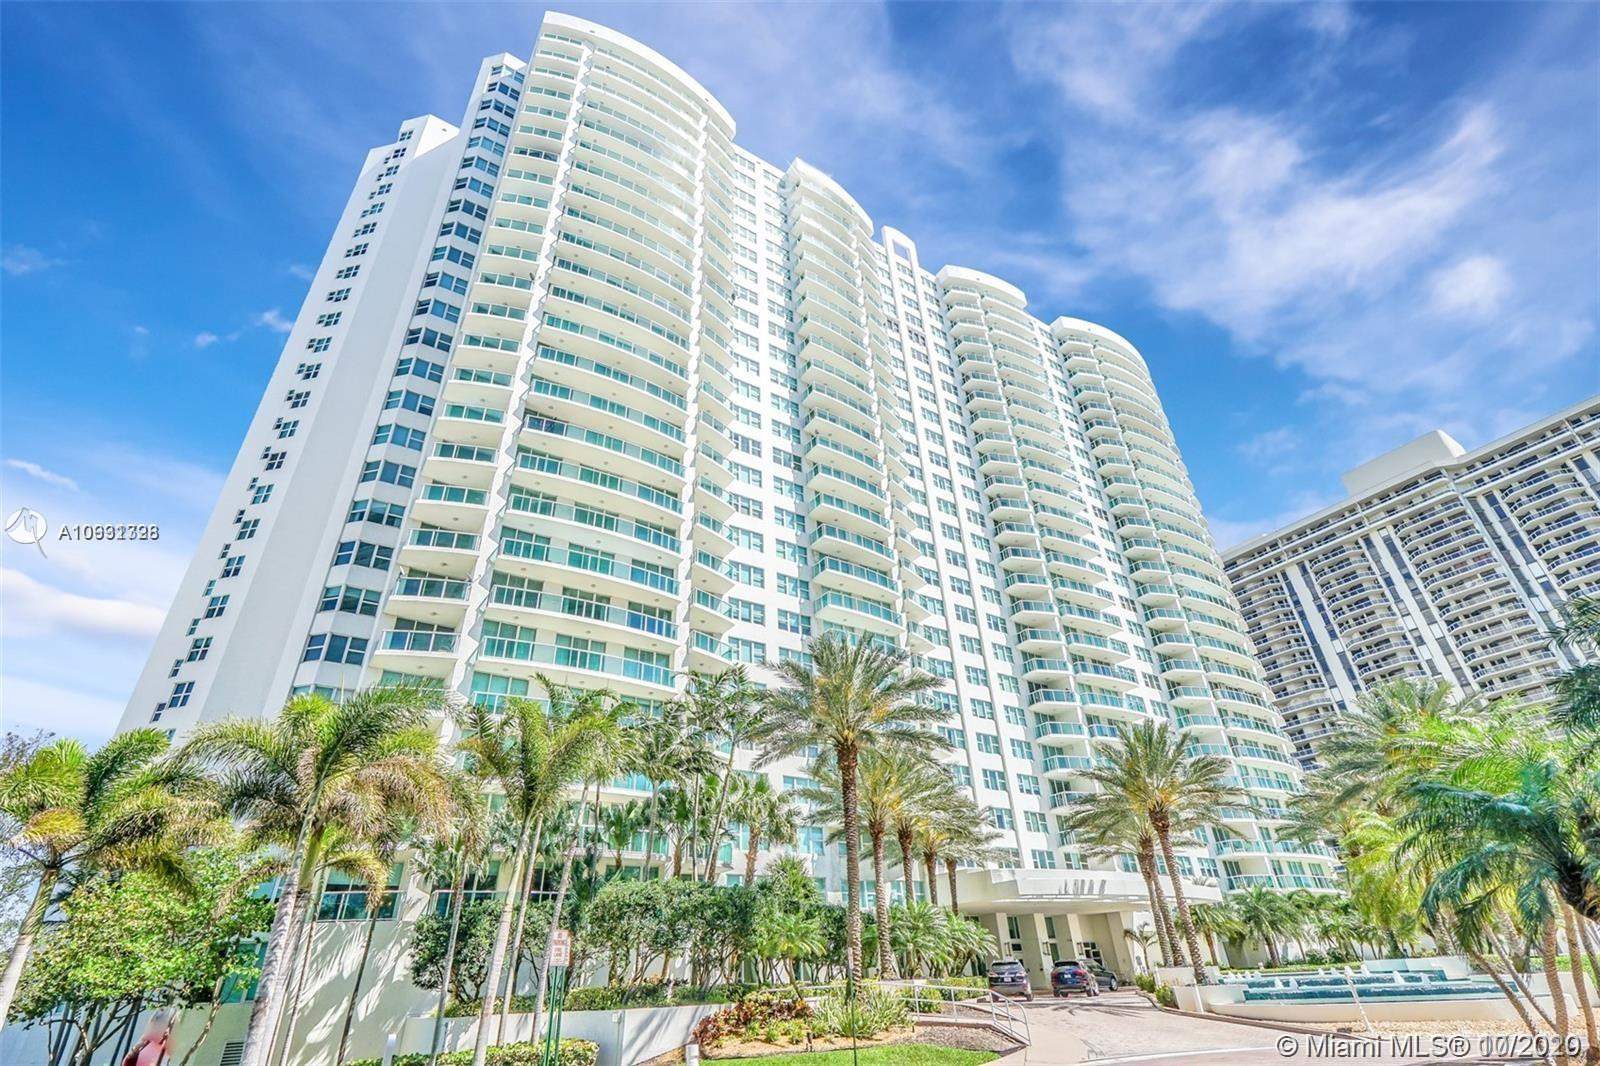 Photo of 20201 Country Club Dr #2407, Aventura, Florida, 33180 - Hamptons South.